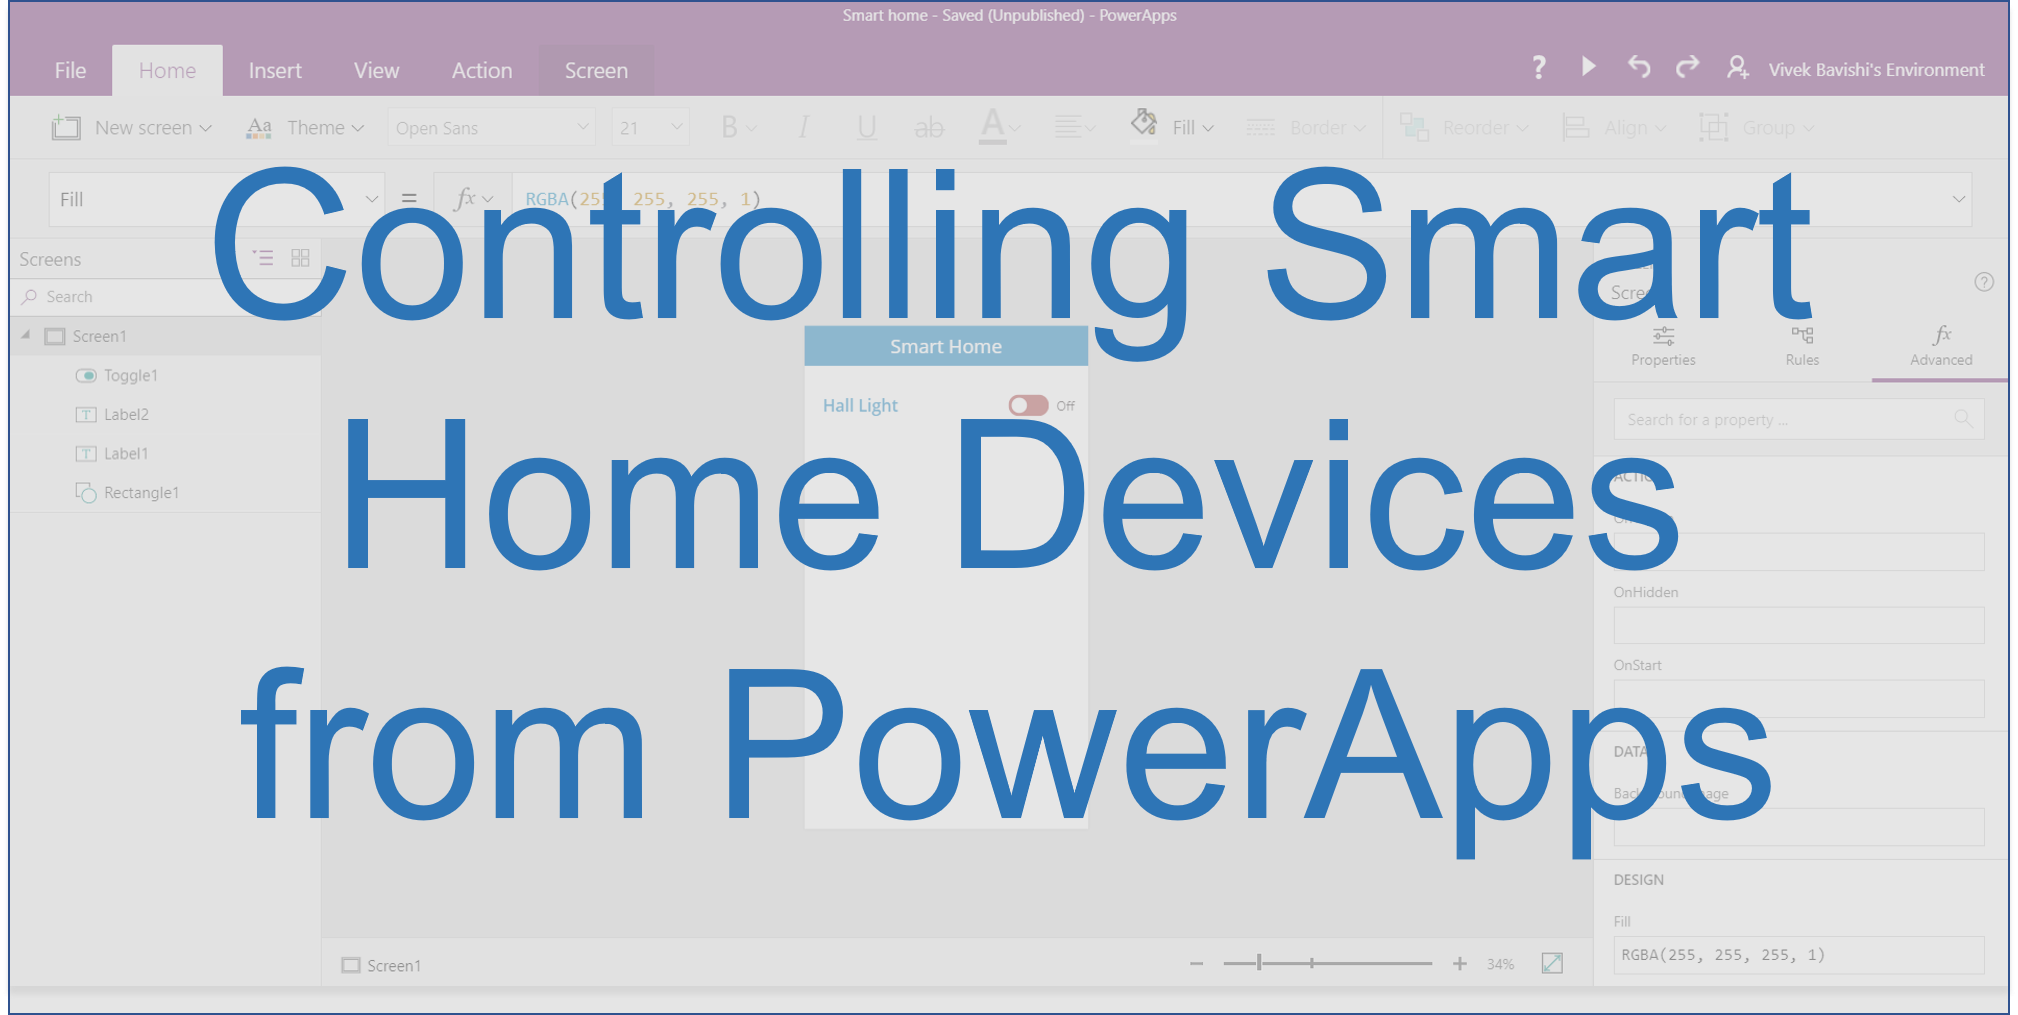 Controlling Smart Home Devices from PowerApps